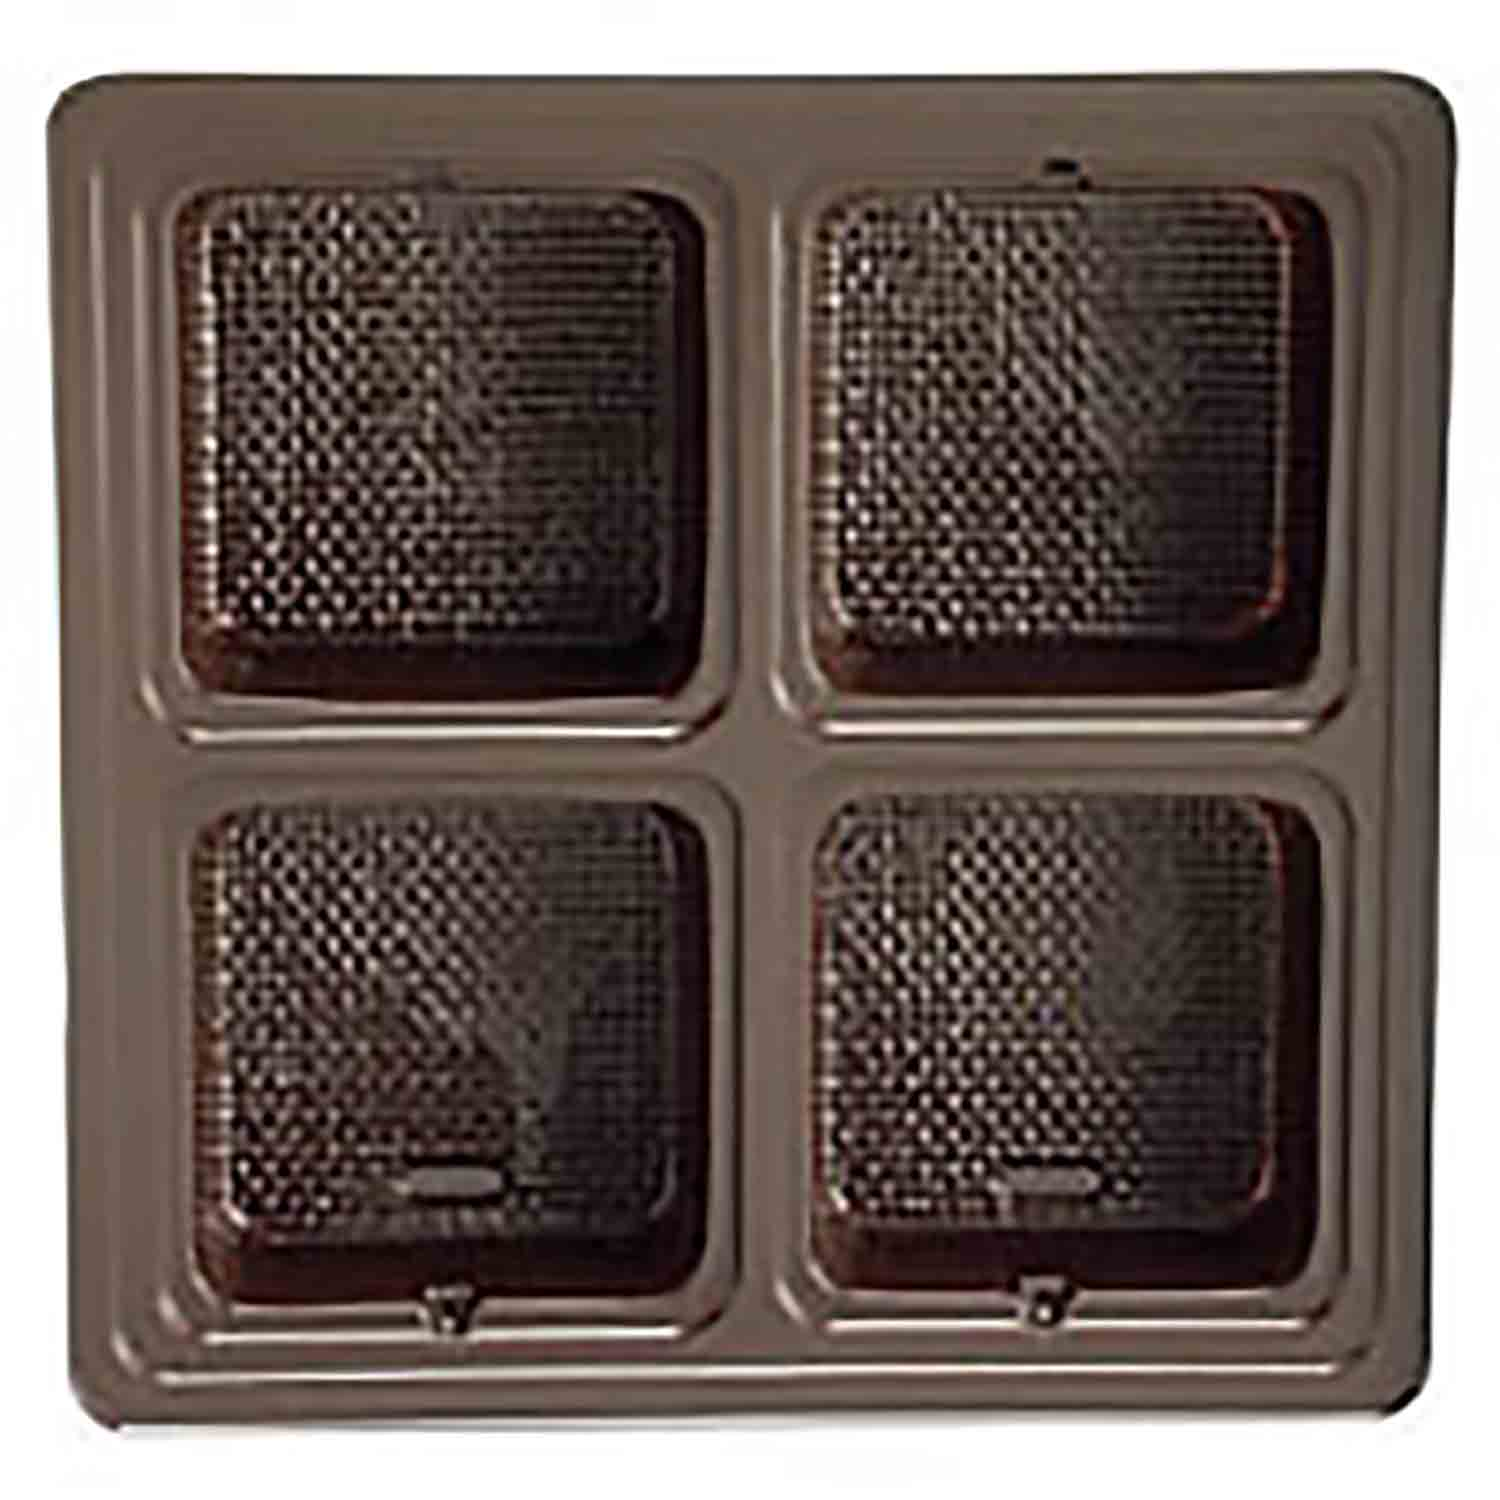 1/2 lb. Square Brown Insert, 4 large cavities